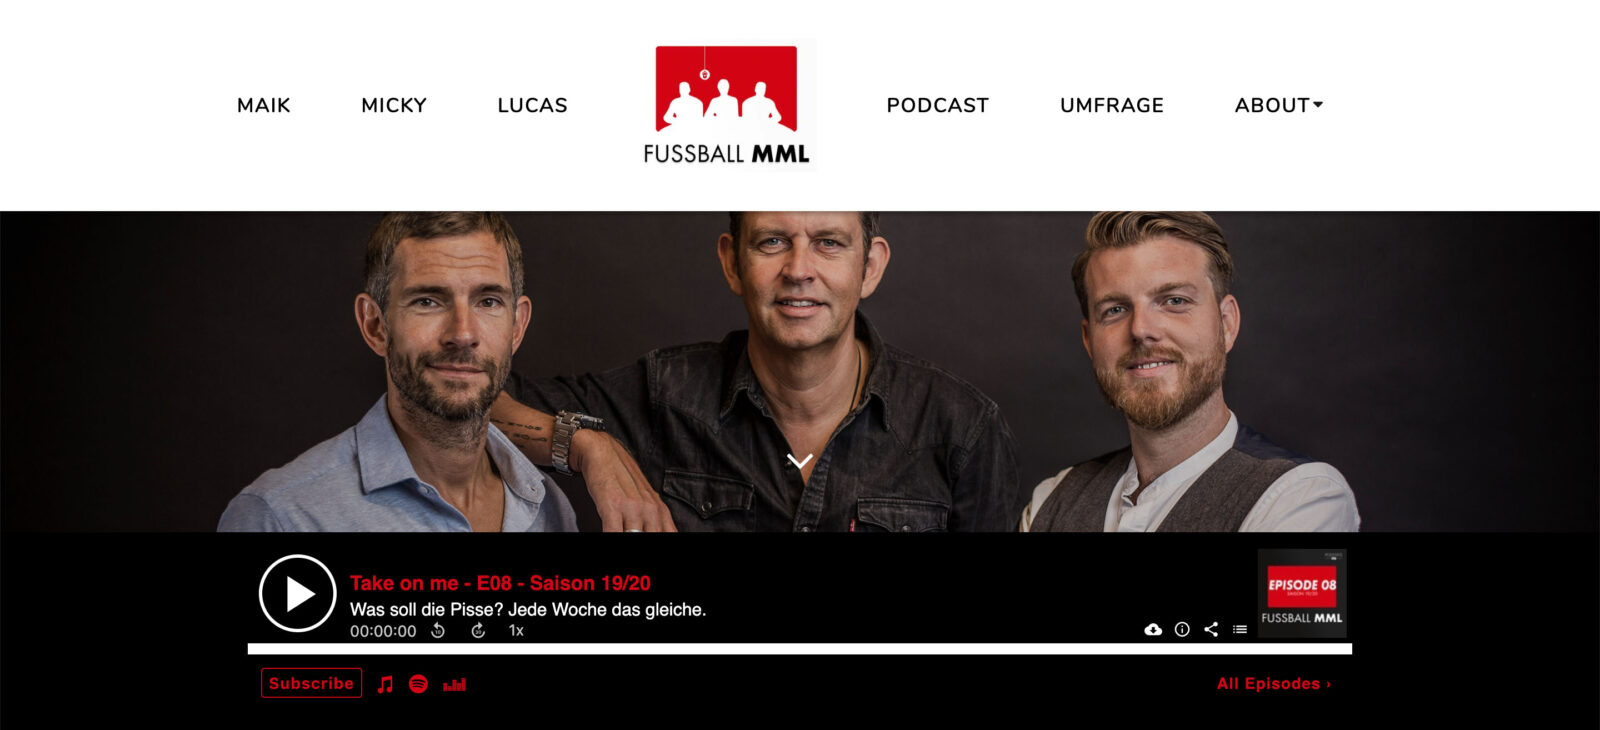 Fussball MML_Podcast Streamen Kopie